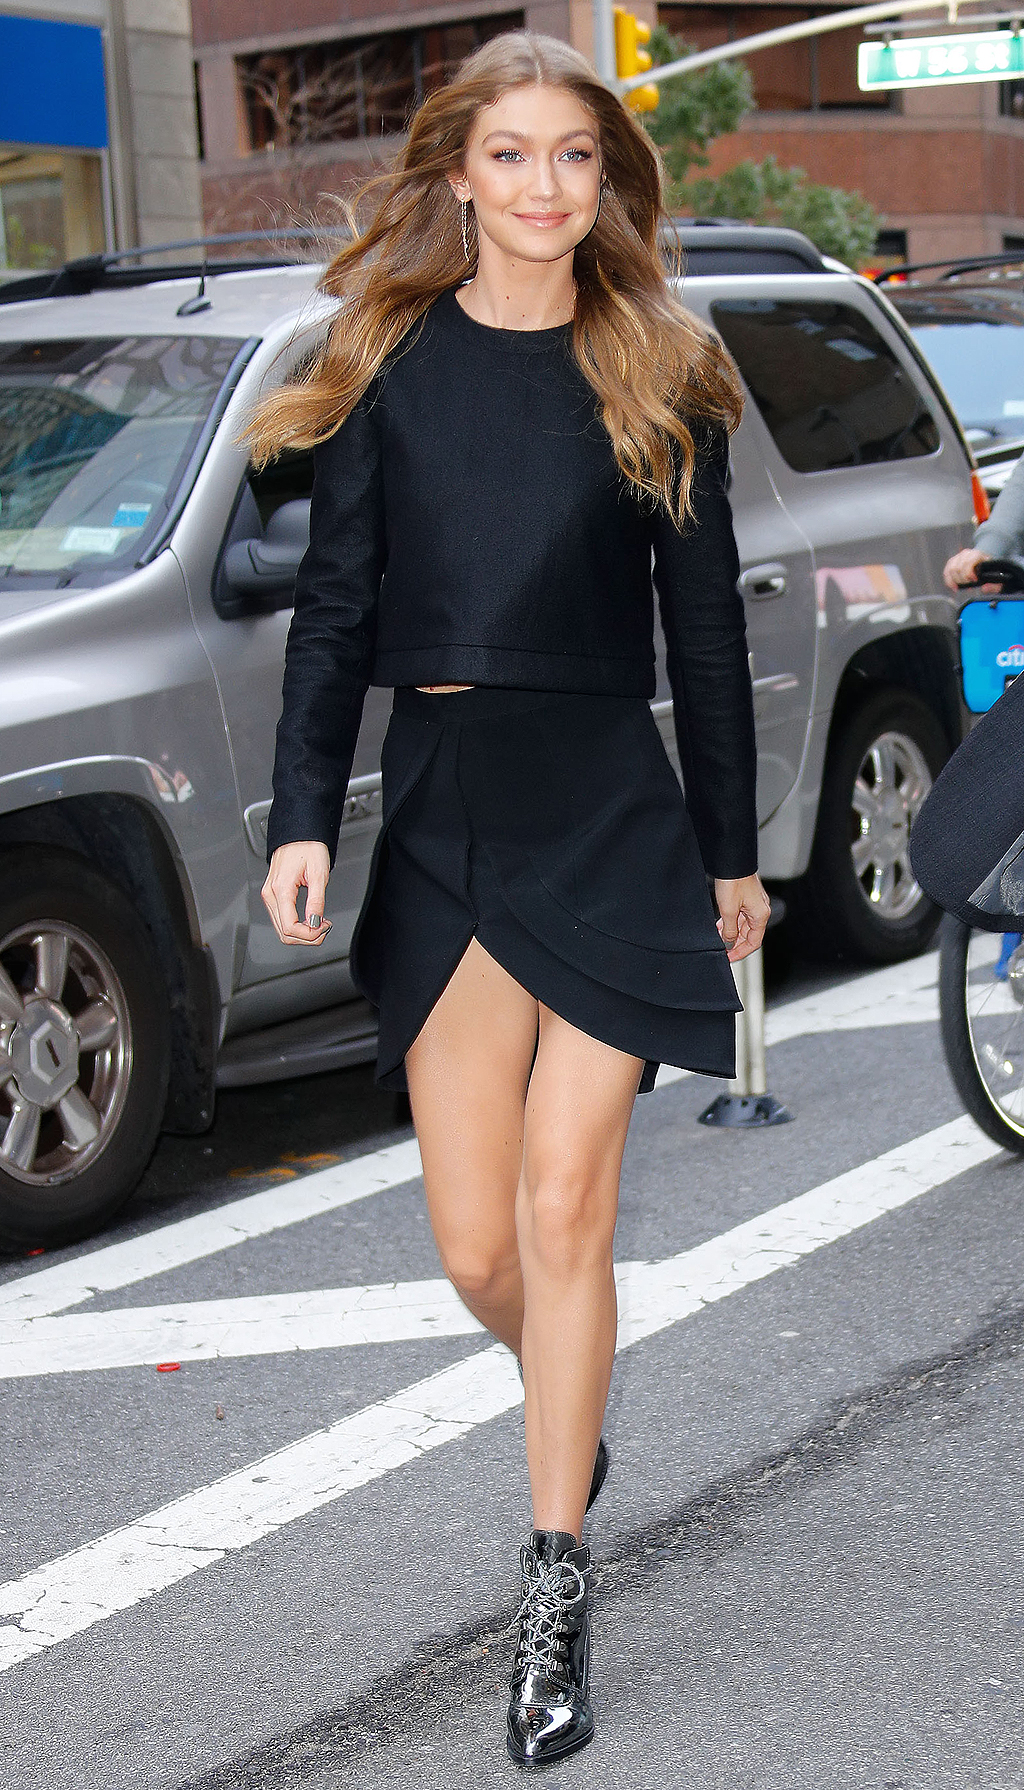 Gigi Hadid is all smiles when out and about in a chic black outfit in New York